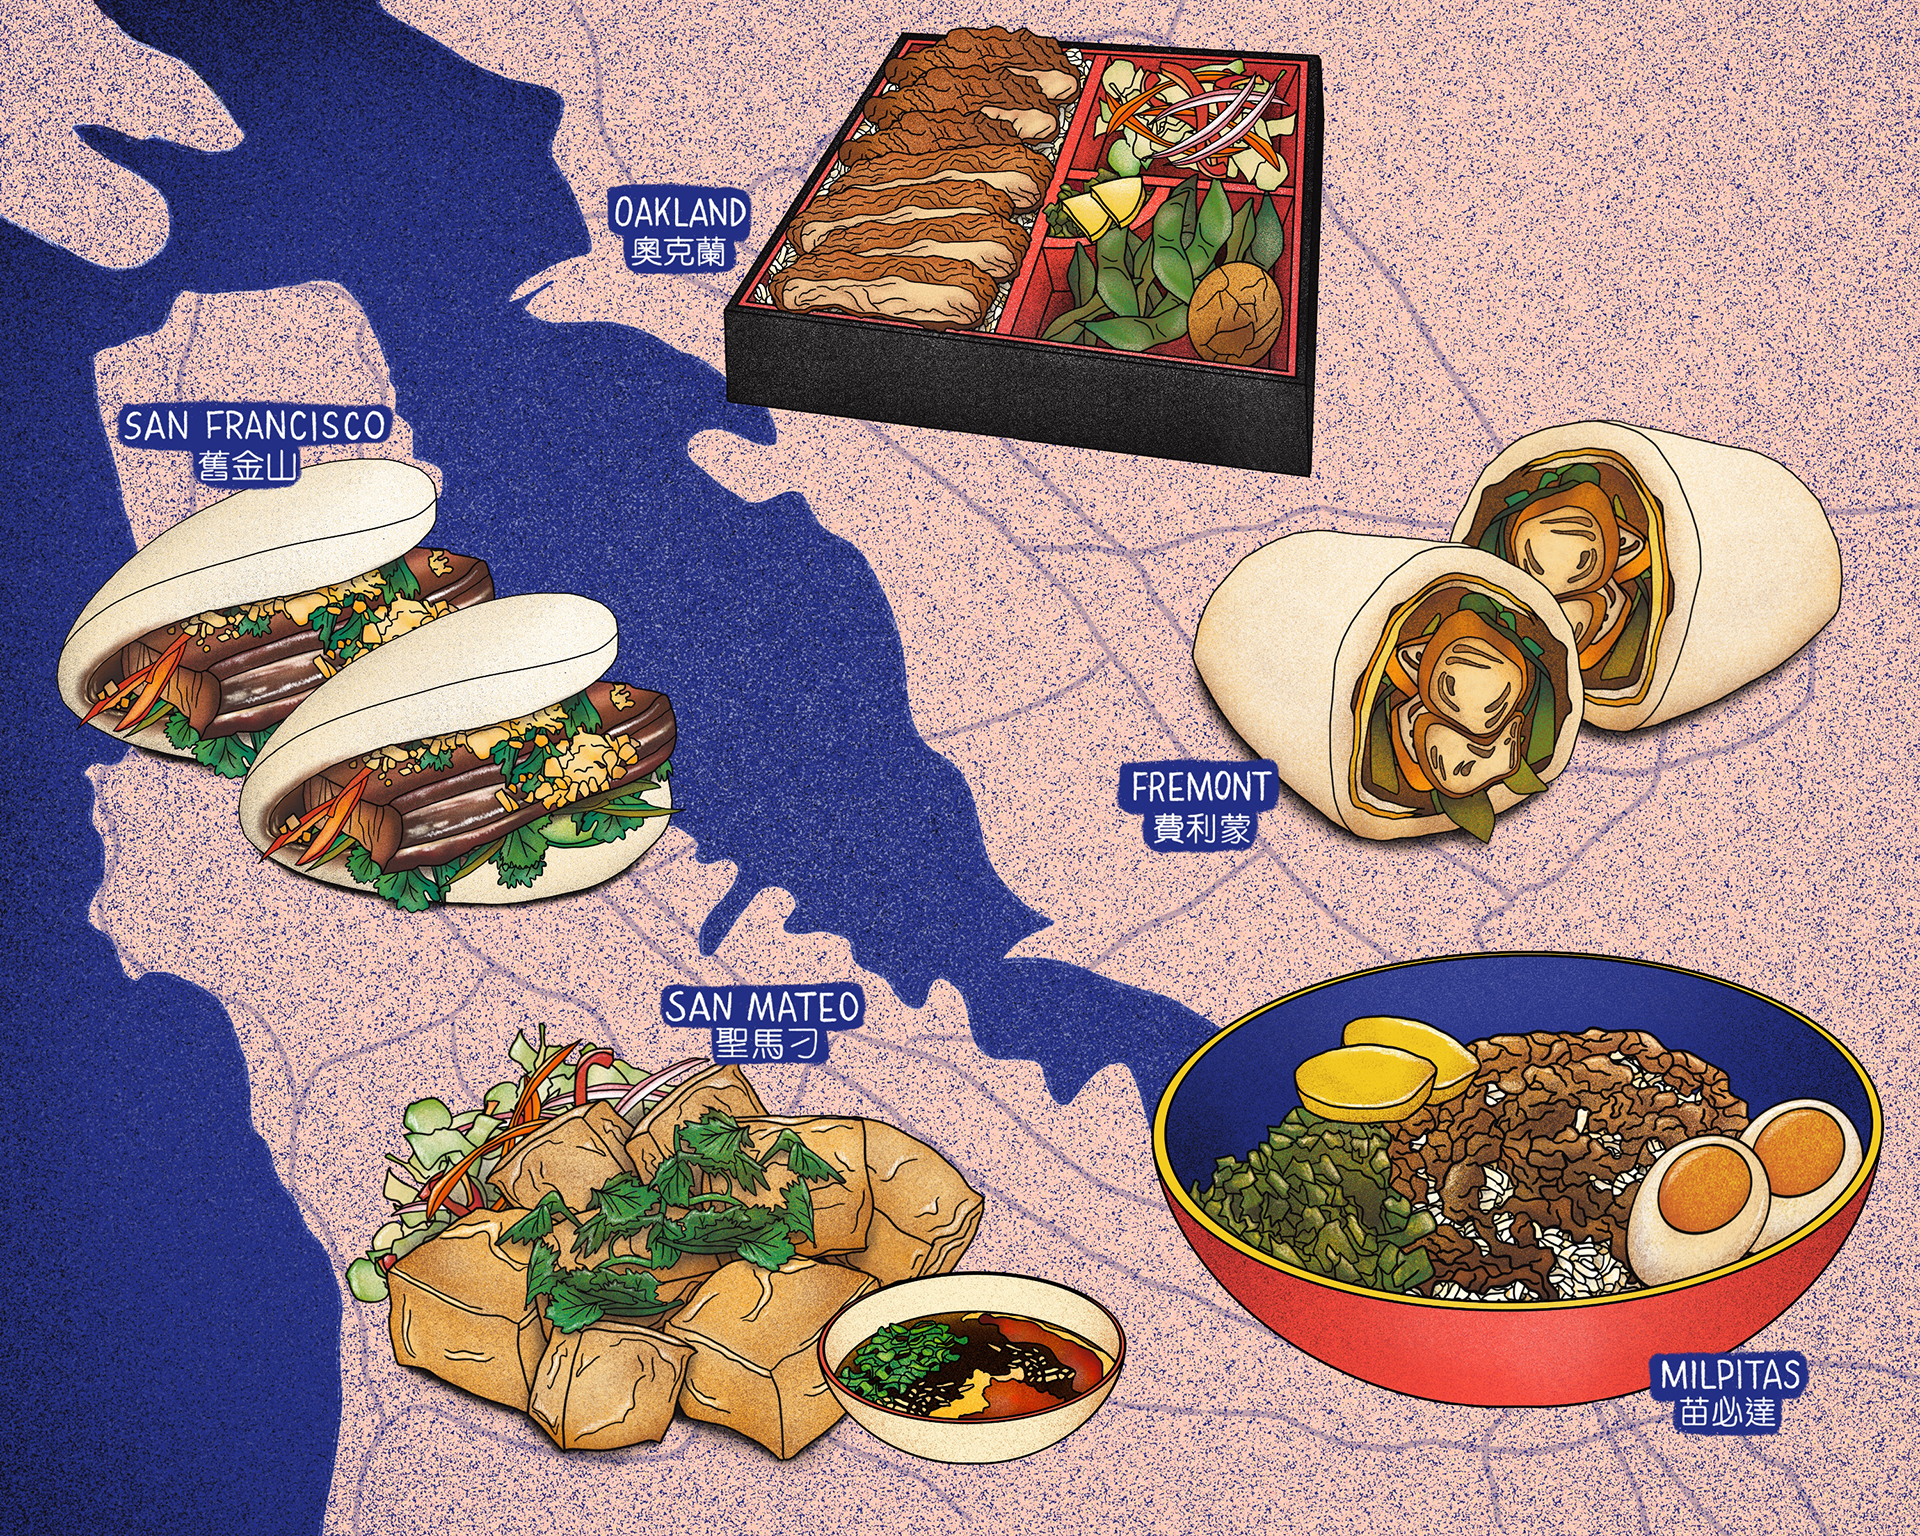 An illustrated map of the Bay Area with drawings of various Taiwanese foods at different locations on the map—gua bao near San Francisco, stinky tofu near San Mateo, pork chop bento near Oakland, fan tuan near Fremont, and lu rou fan near Milpitas.